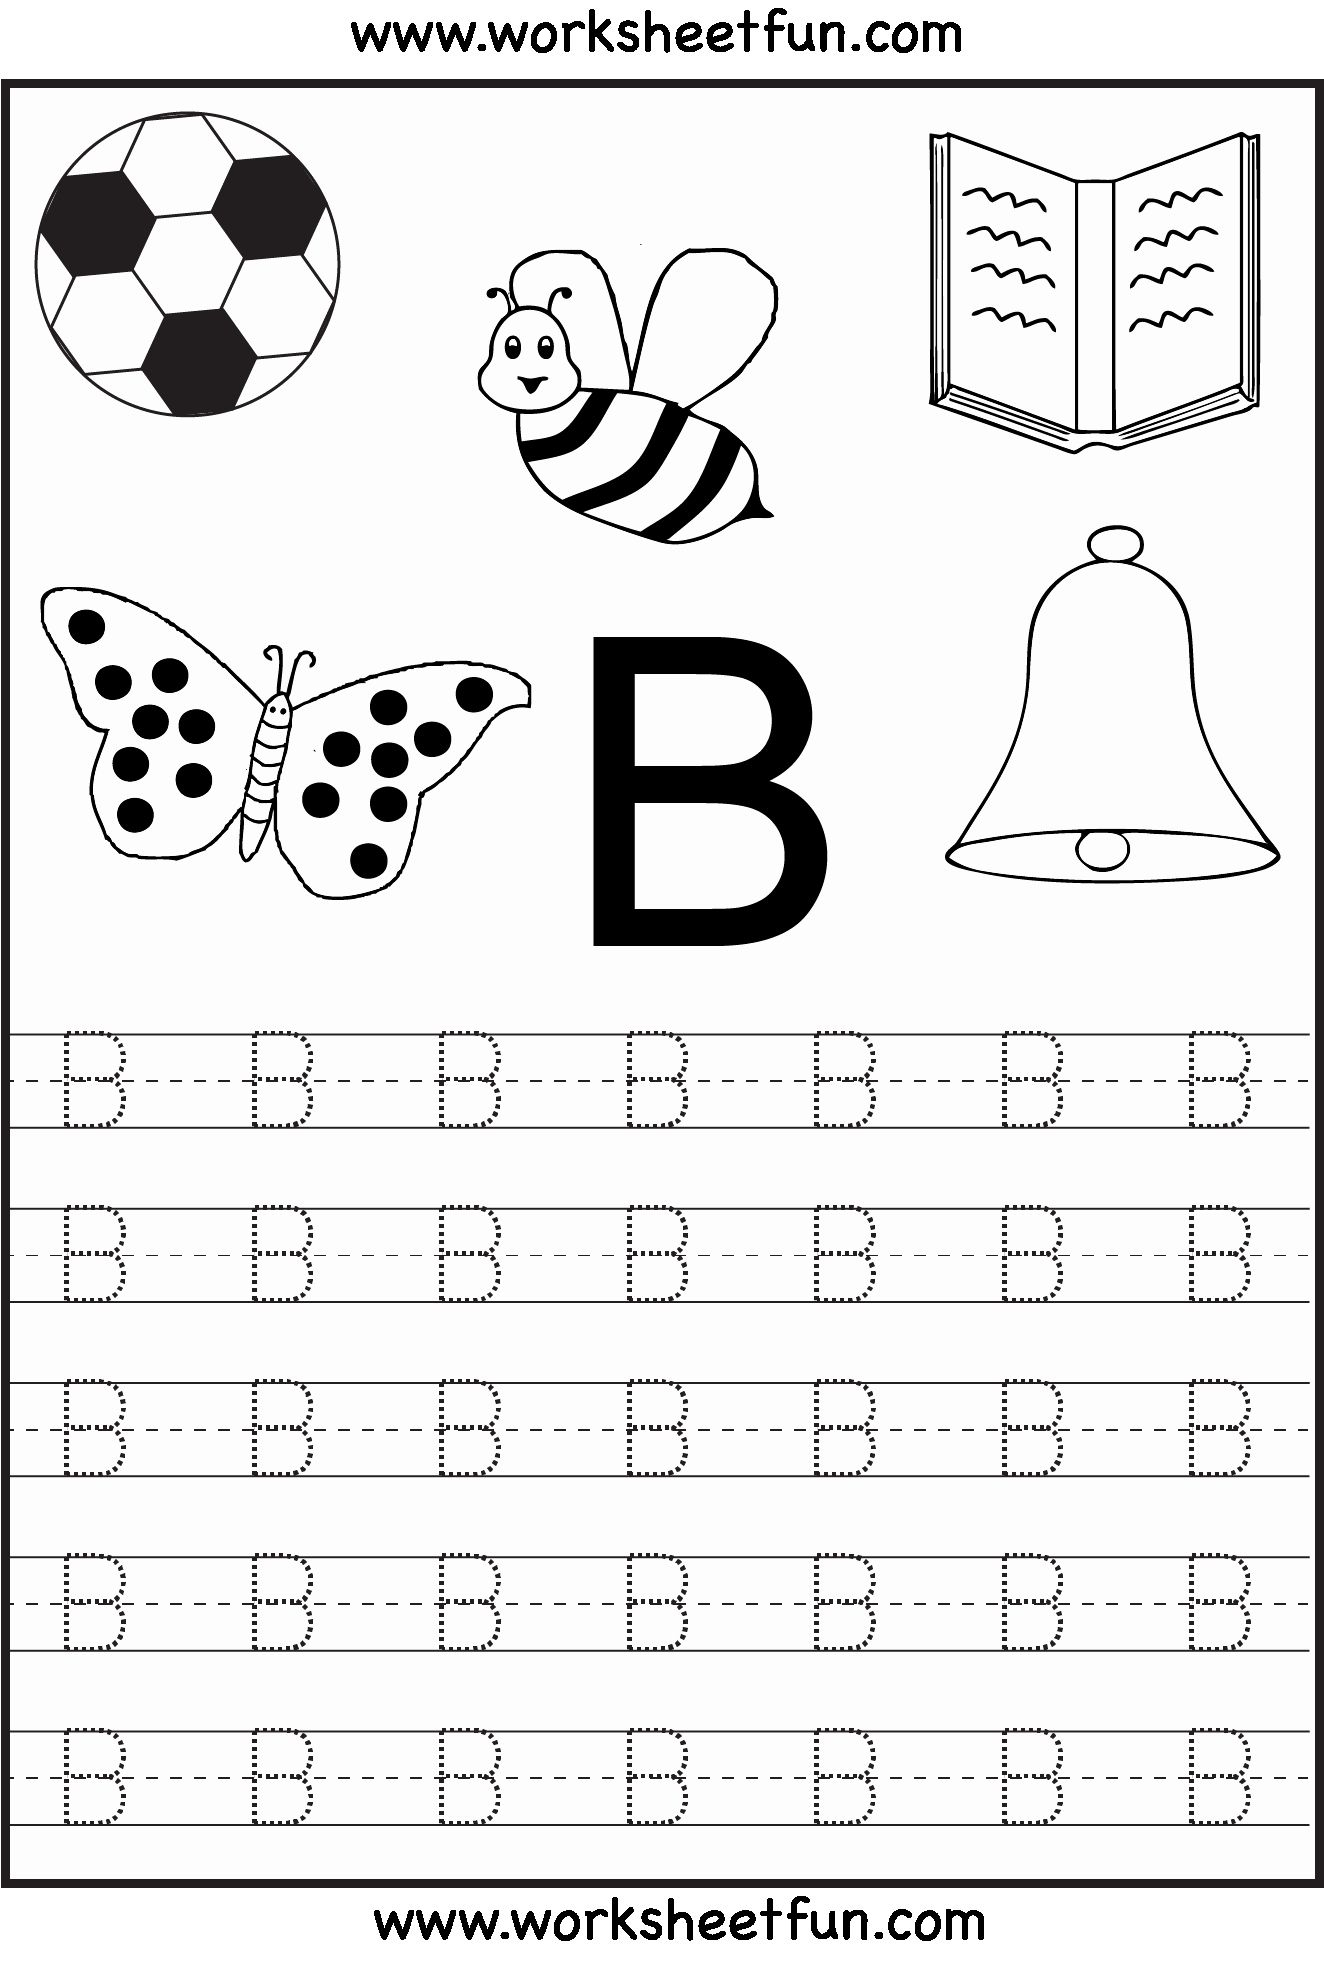 Alphabet Coloring Worksheets A-Z Pdf In 2020 (With Images in Alphabet Worksheets A-Z Pdf